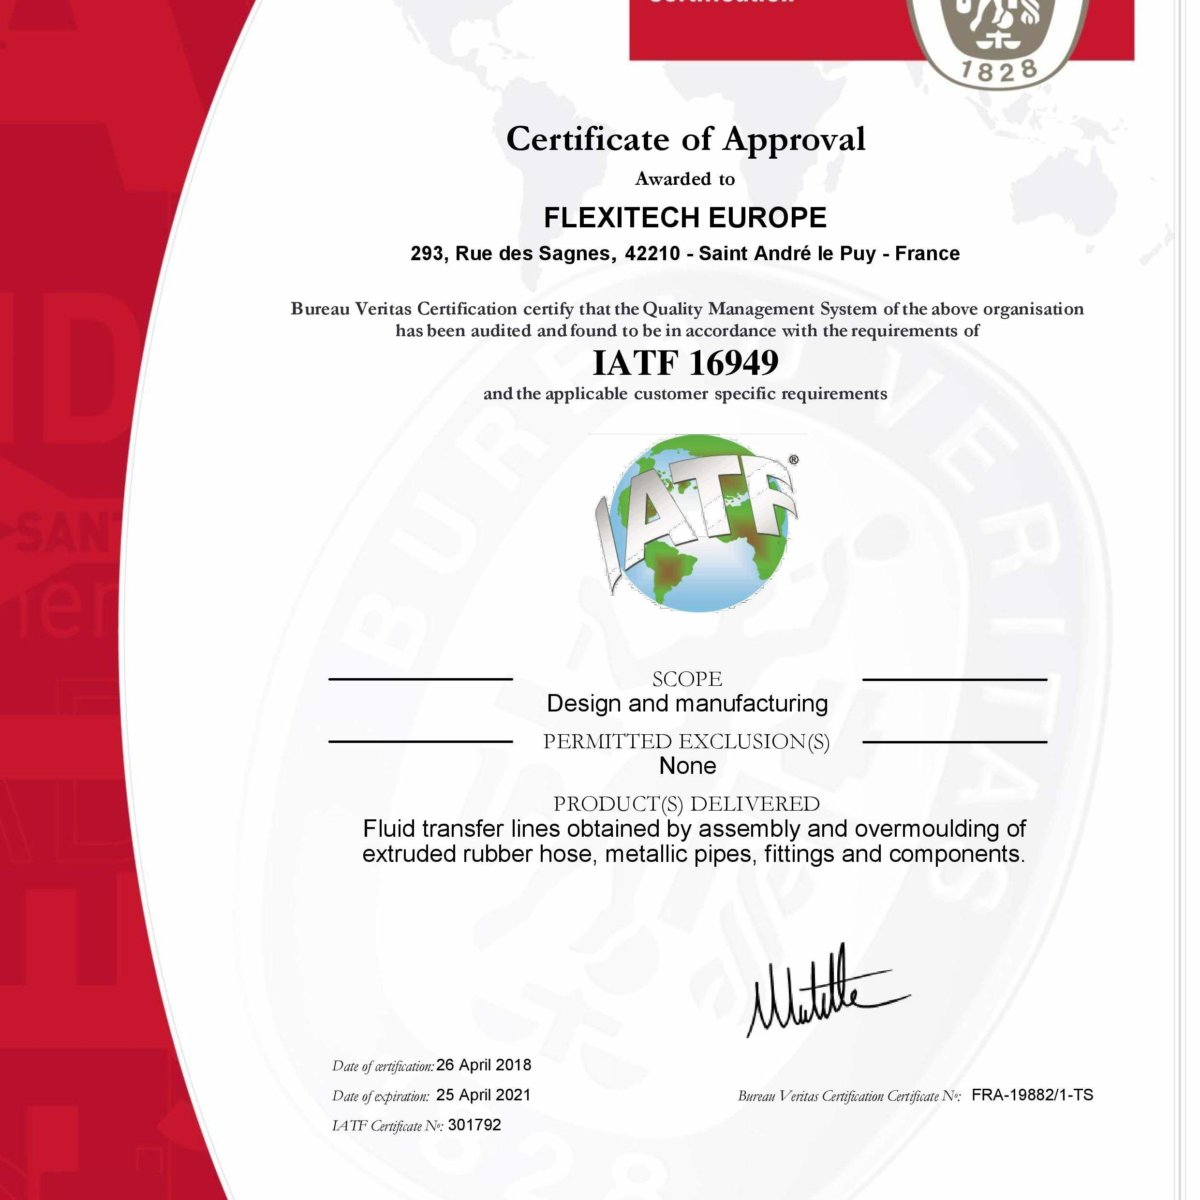 06/2018 -Our plants in France, Romania, Brazil, US and Mexico received the new IATF certification